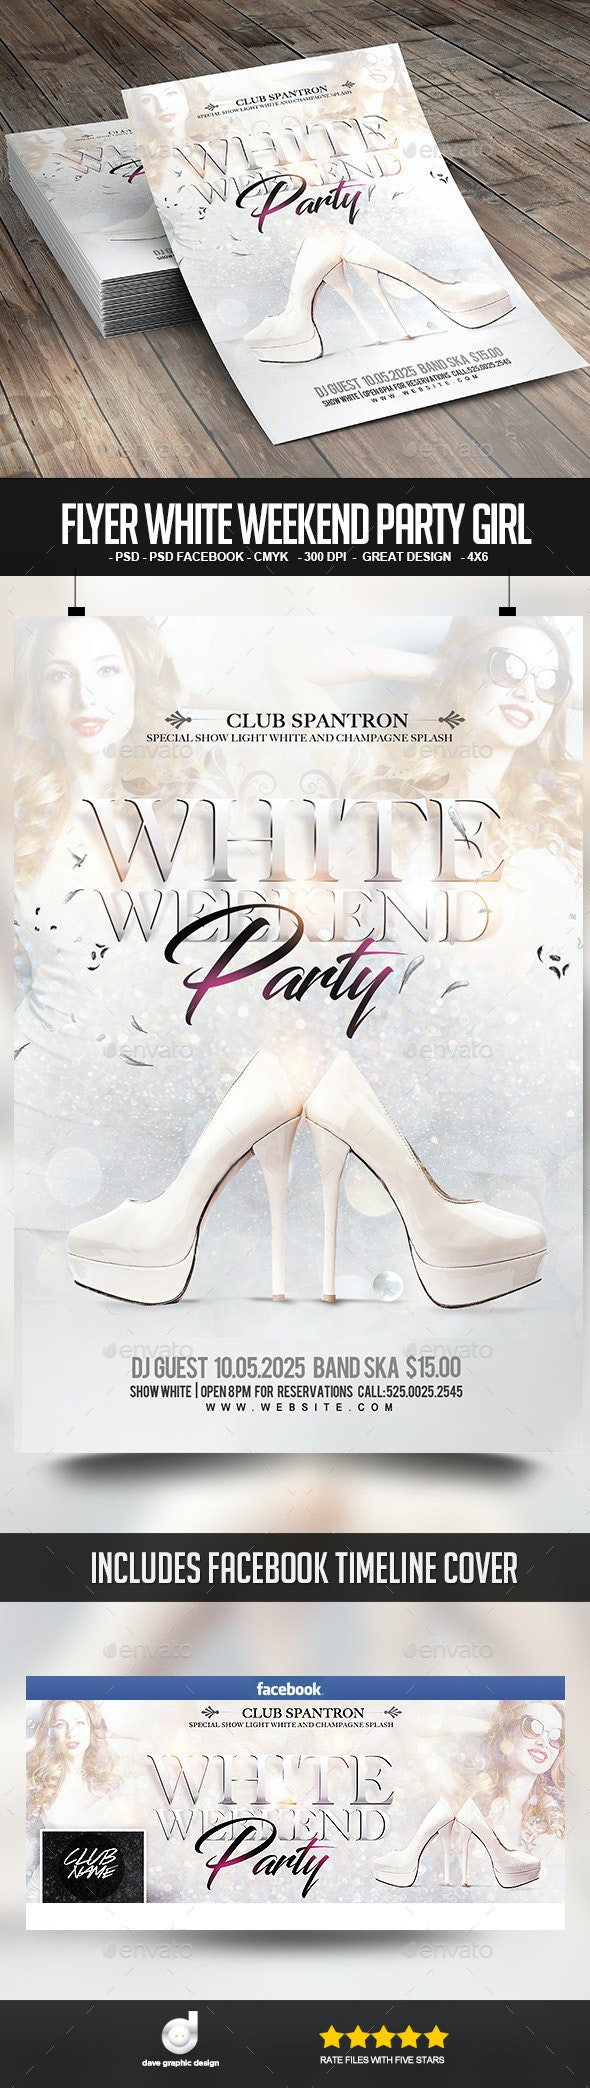 Flyer White Weekend Party Girl - Clubs & Parties Events